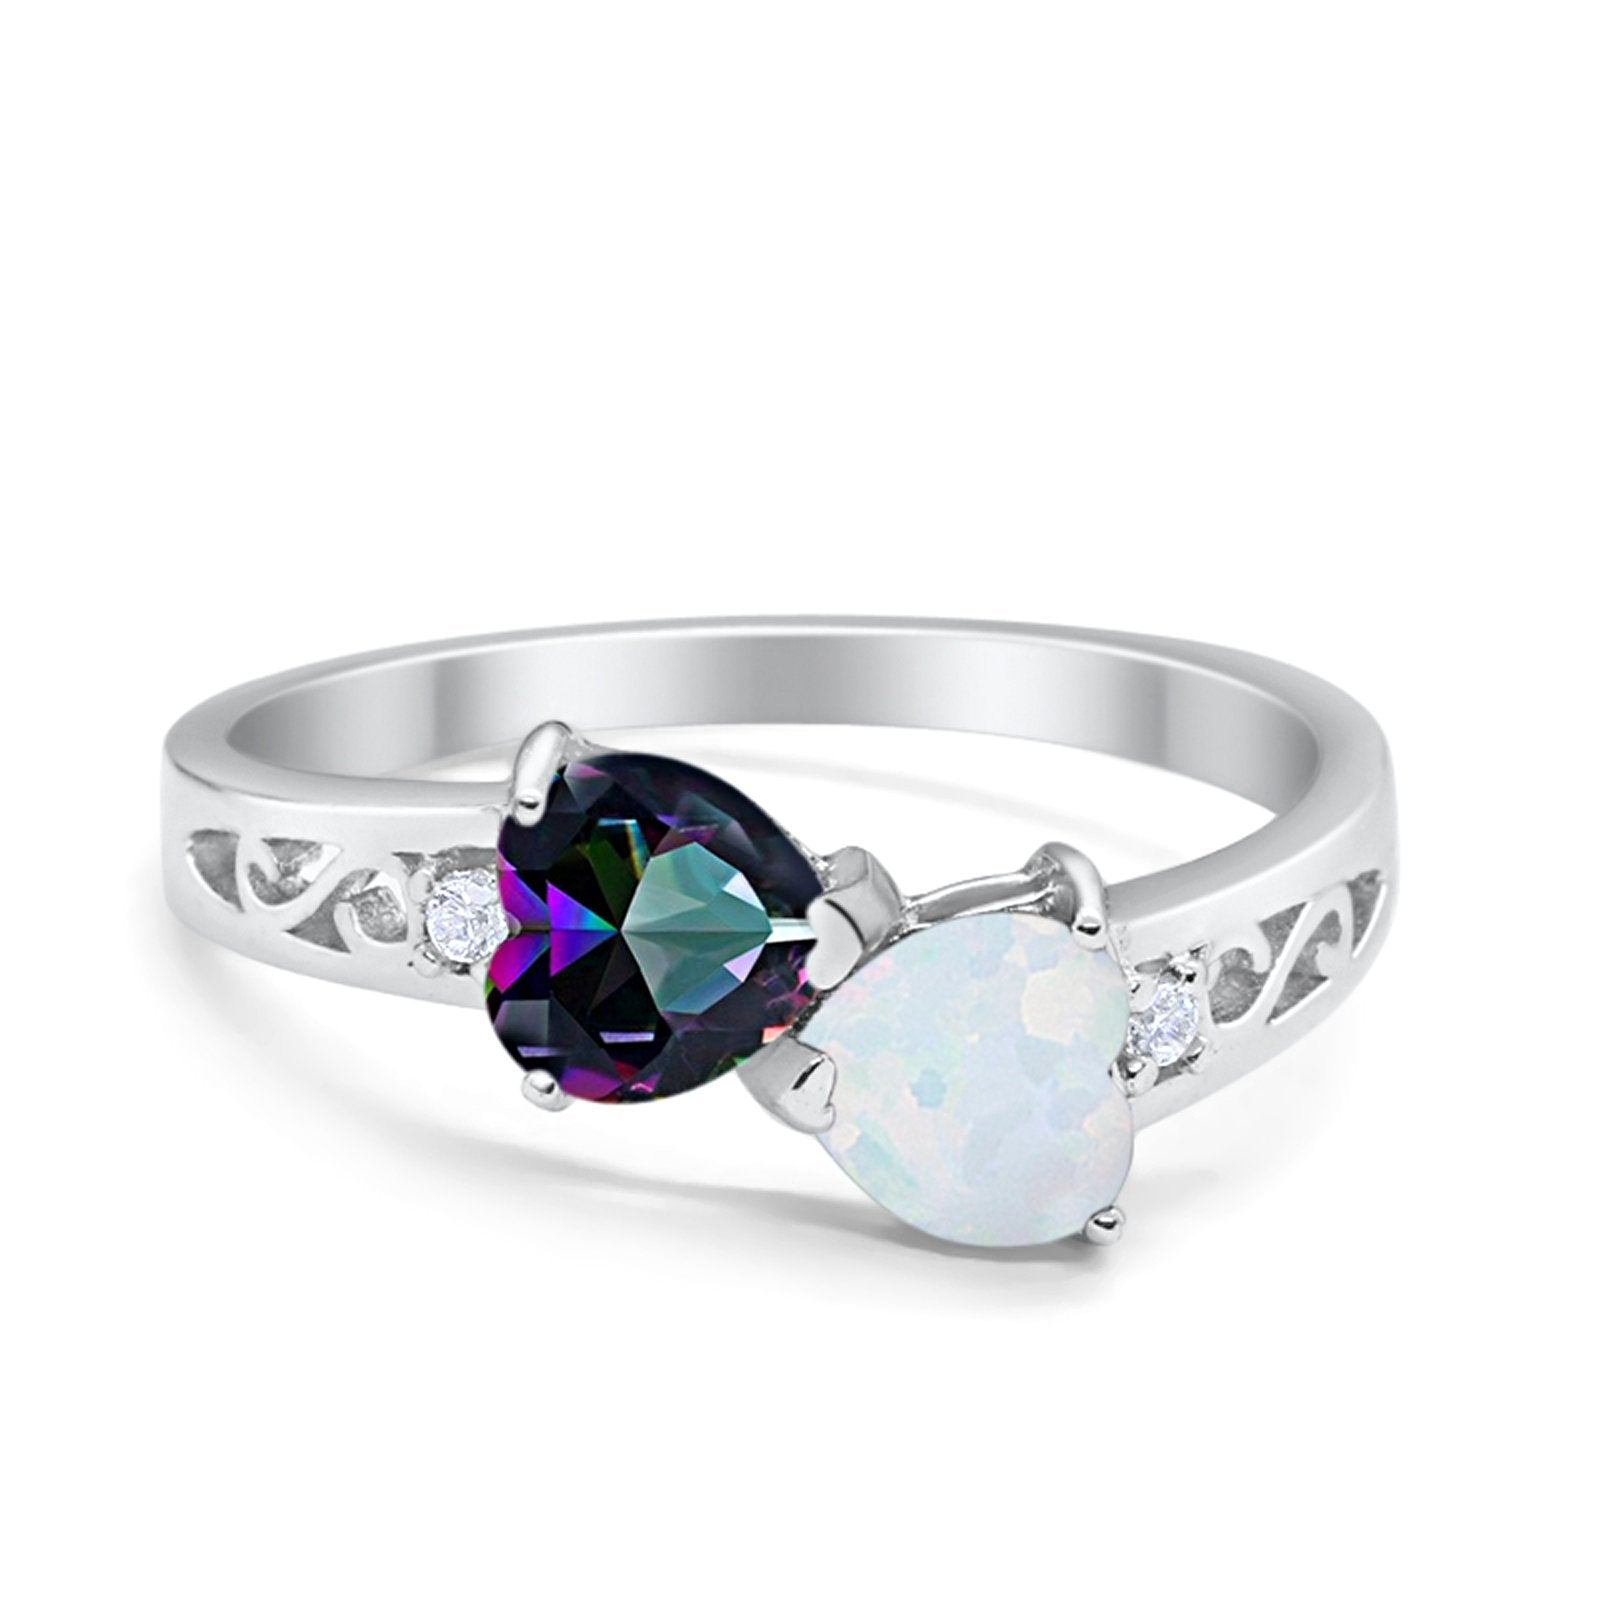 Heart Filigree Ring Round Cubic Zirconia 925 Sterling Silver Created White Opal